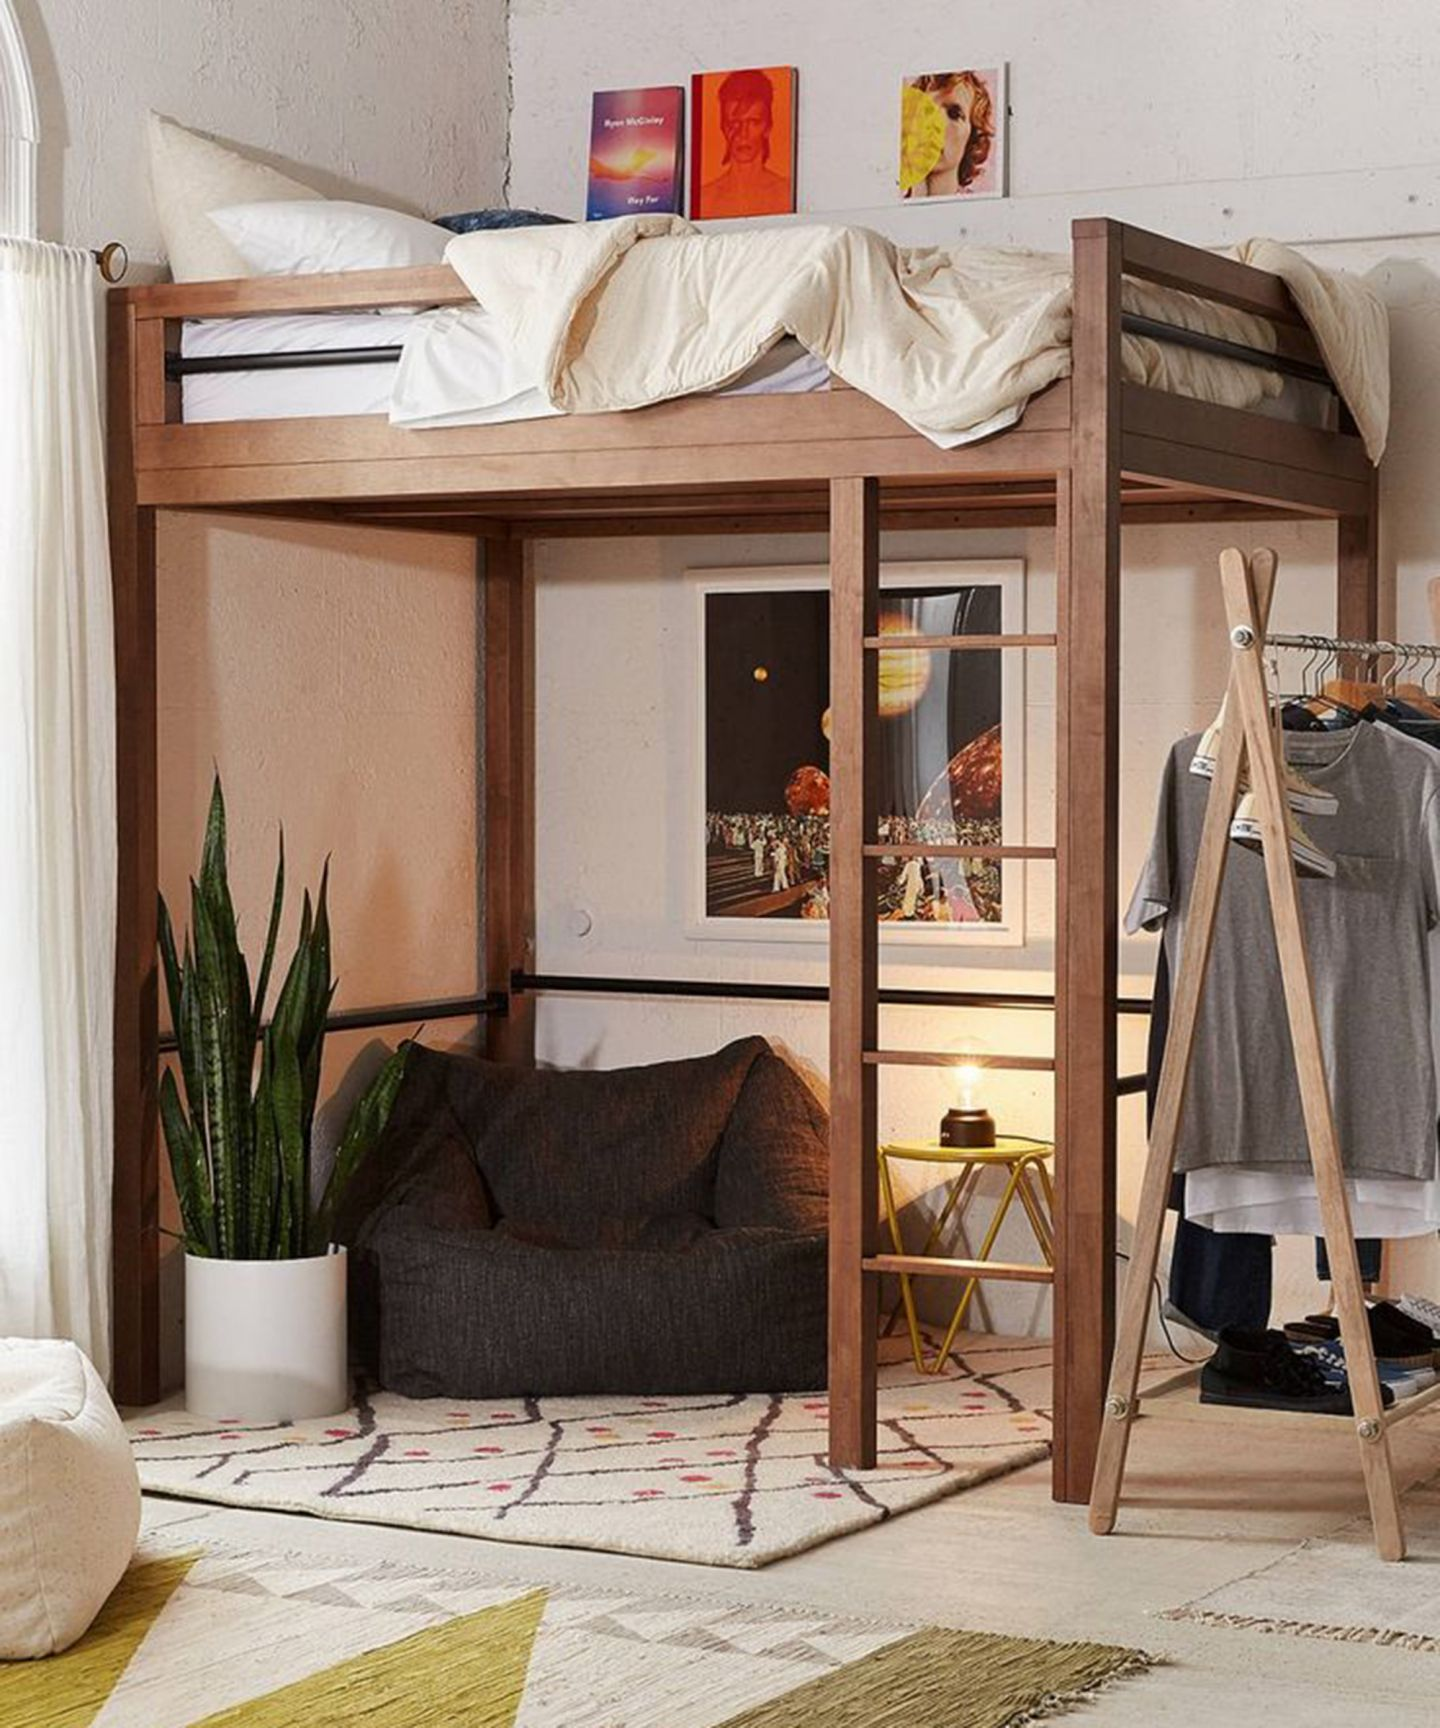 7 decorating ideas for your grown up loft bed lofted - Small beds for adults ...